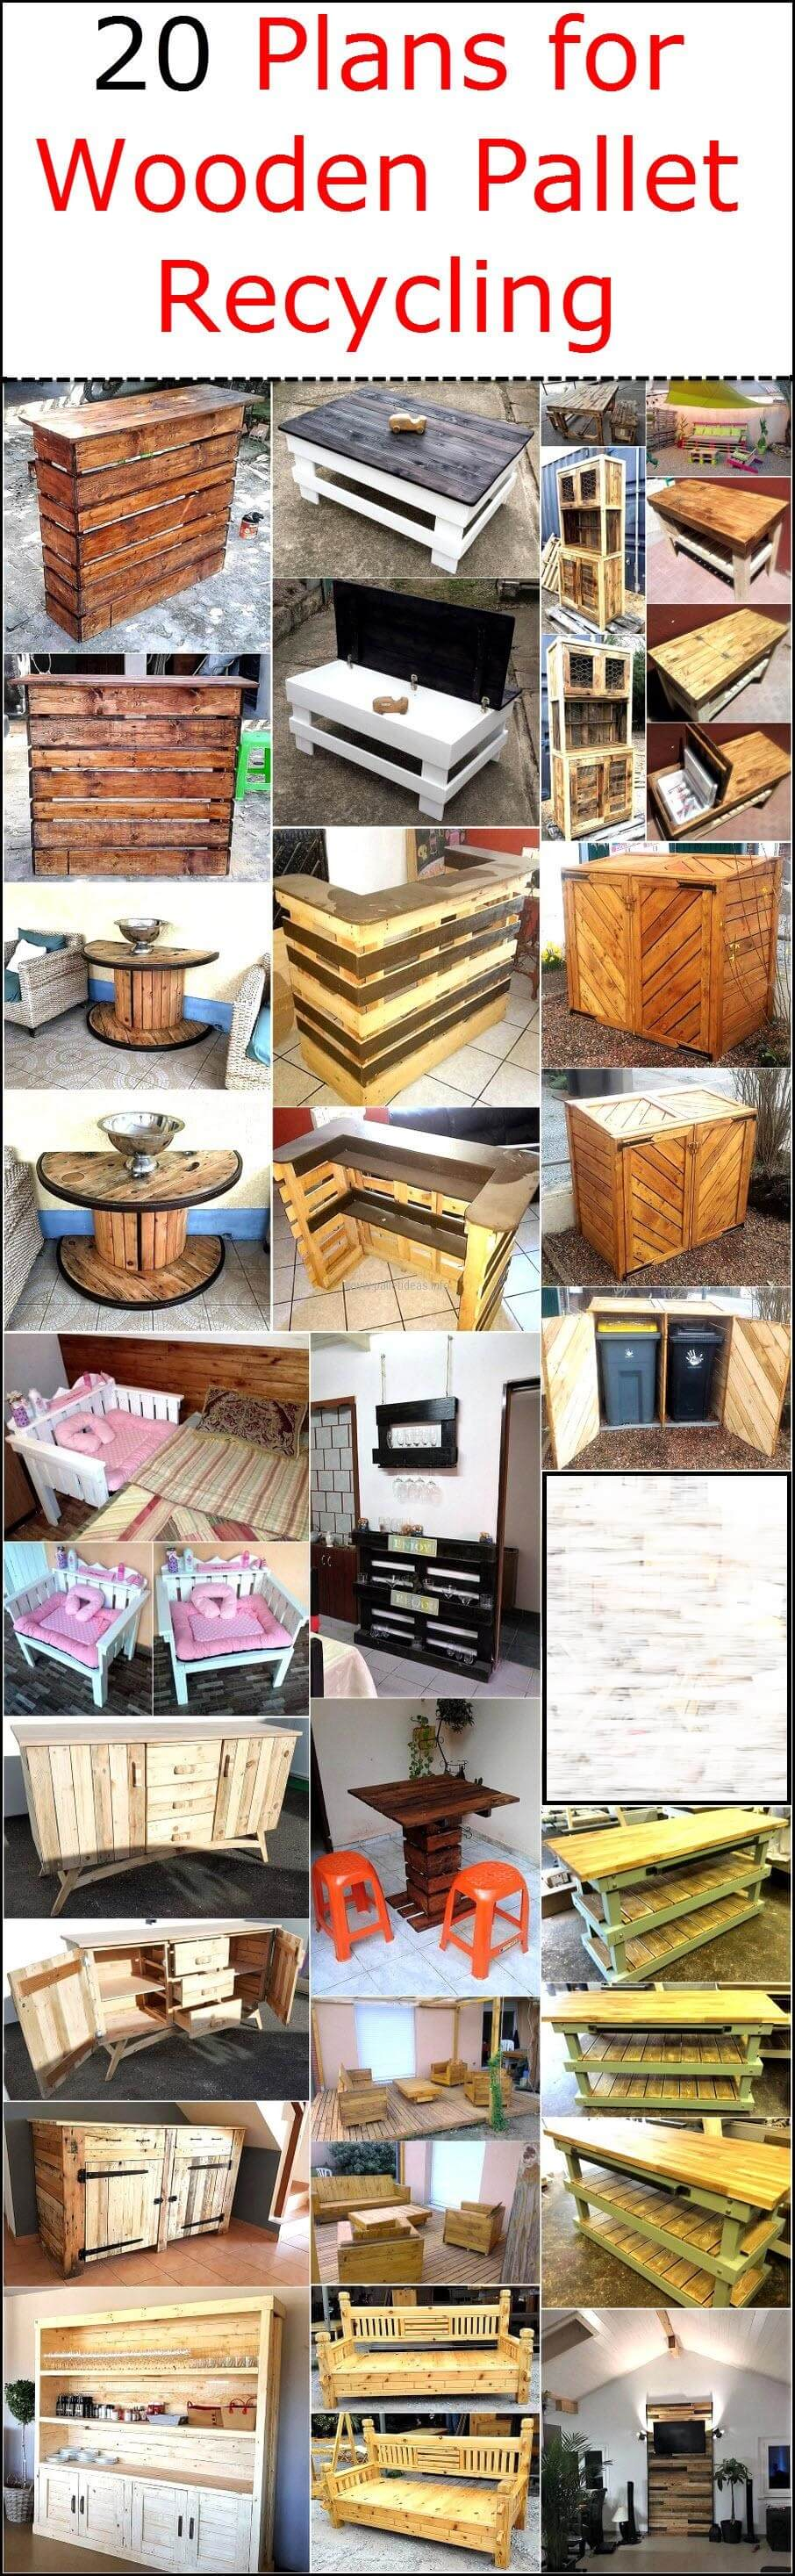 20-Plans-for-Wooden-Pallets-Recycling